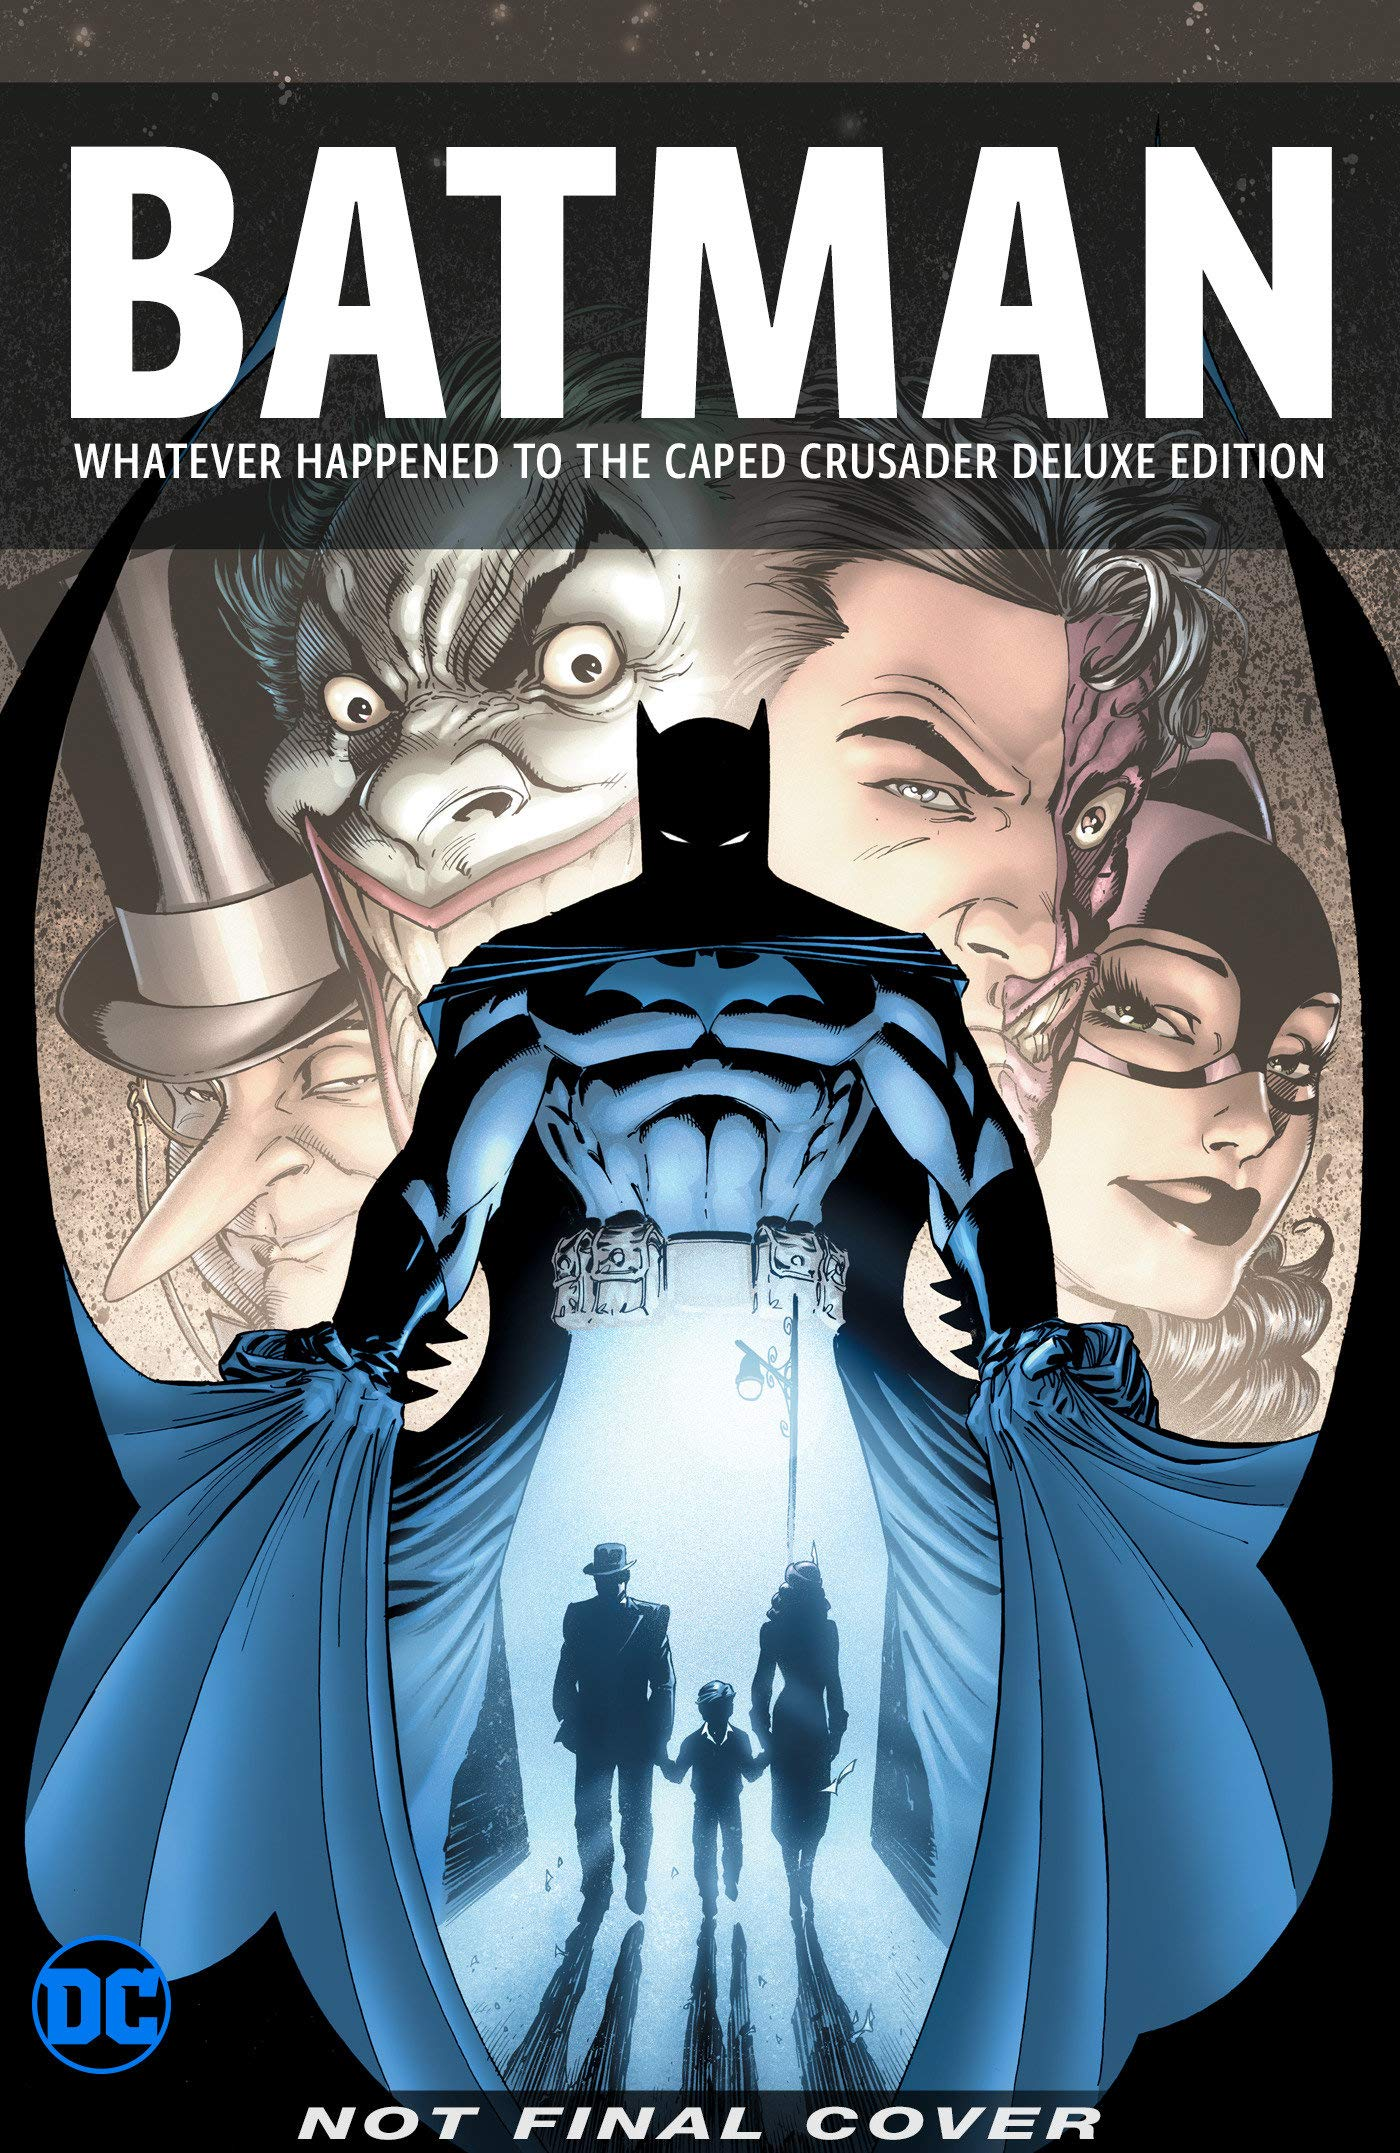 Best Comics 2020.Batman Whatever Happened To The Caped Crusader Deluxe 2020